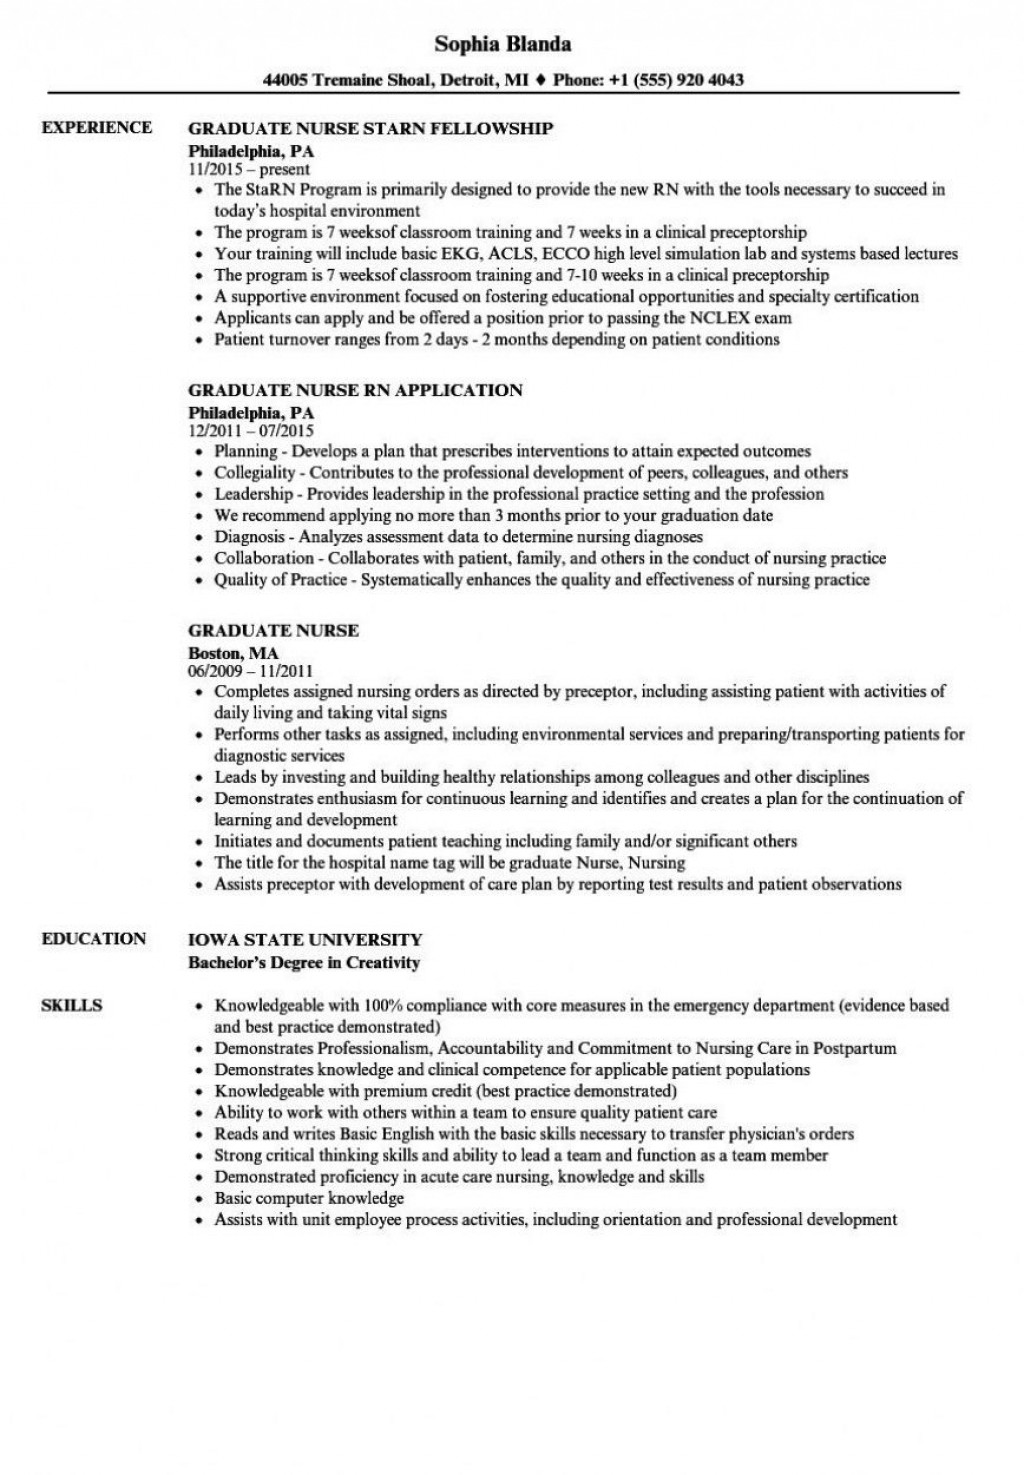 000 Impressive New Grad Nursing Resume Template Example  Graduate Nurse PractitionerLarge